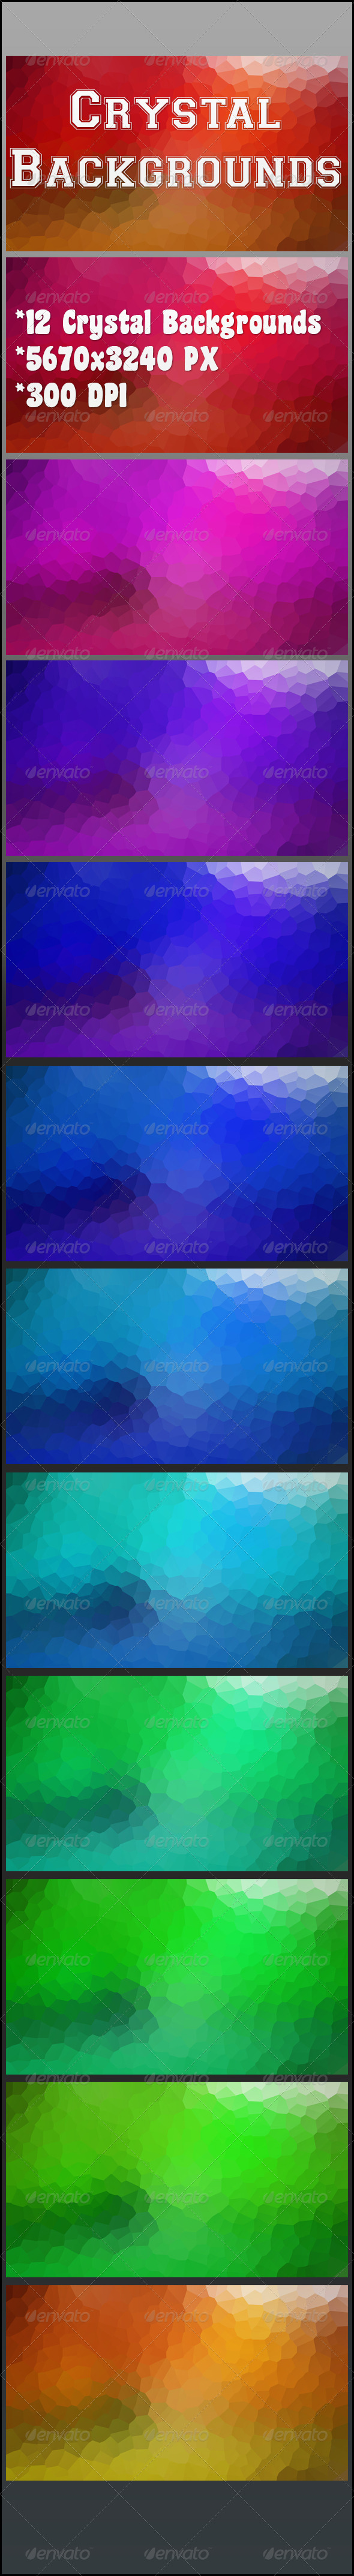 GraphicRiver Crystal Backgrounds 6973856